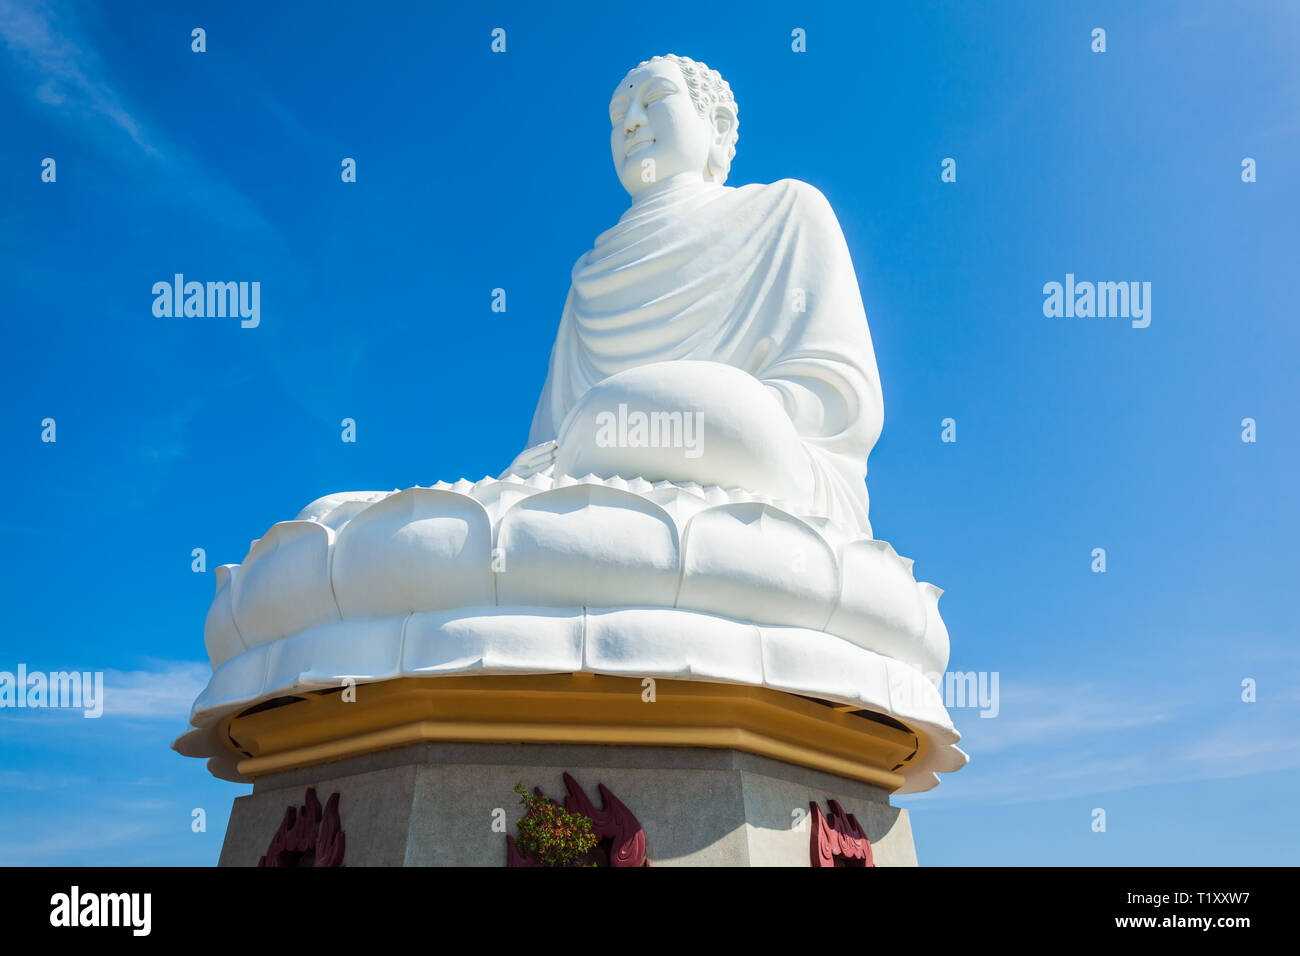 Big Buddha statue at the Long Son Pagoda or Chua Long Son, a Buddhist temple in the city of Nha Trang in south Vietnam Stock Photo